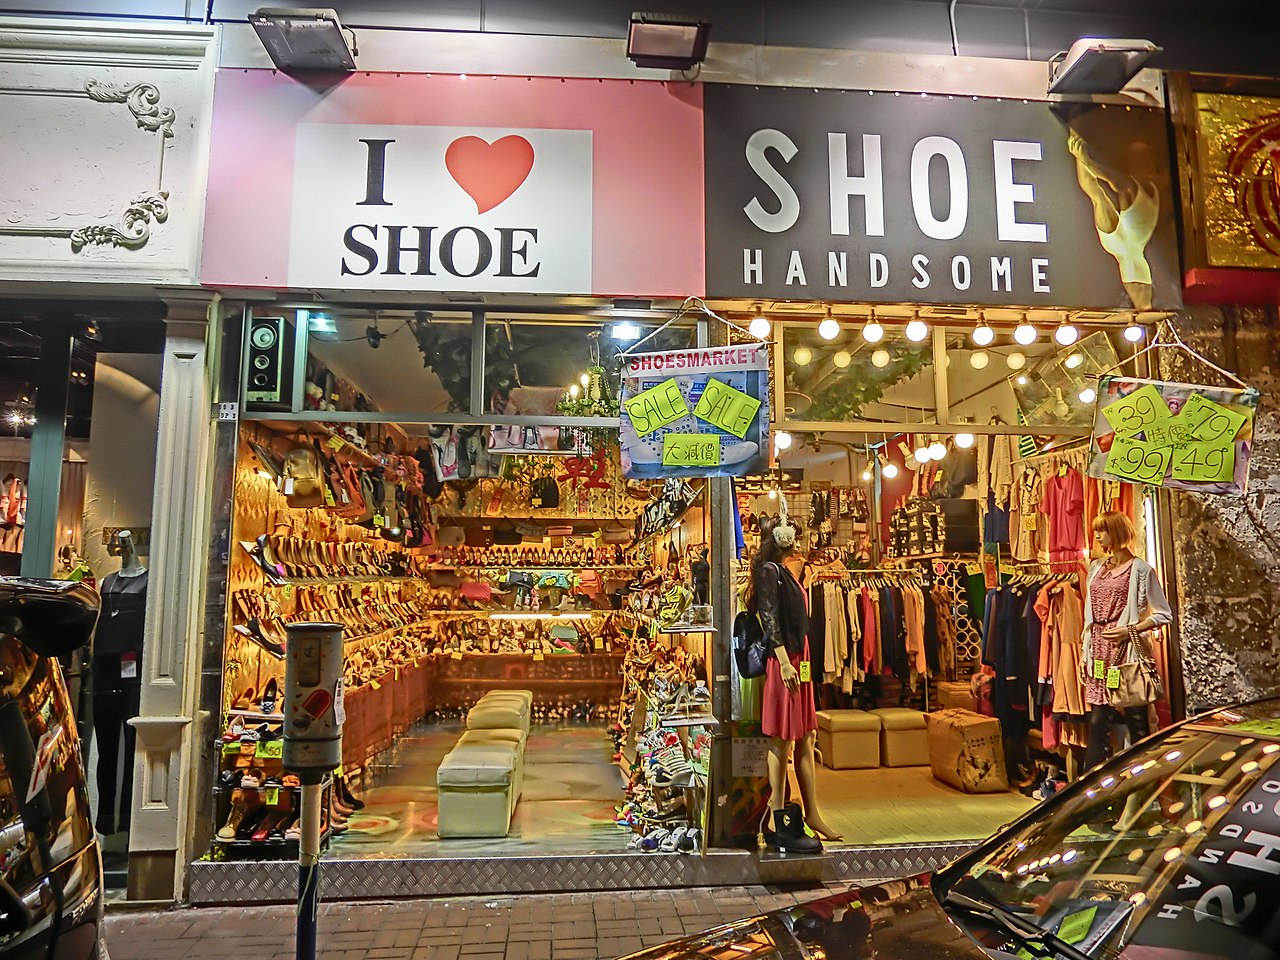 File:HK Jordan 佐敦 廟街 Temple Street night shoe shop Apr-2013